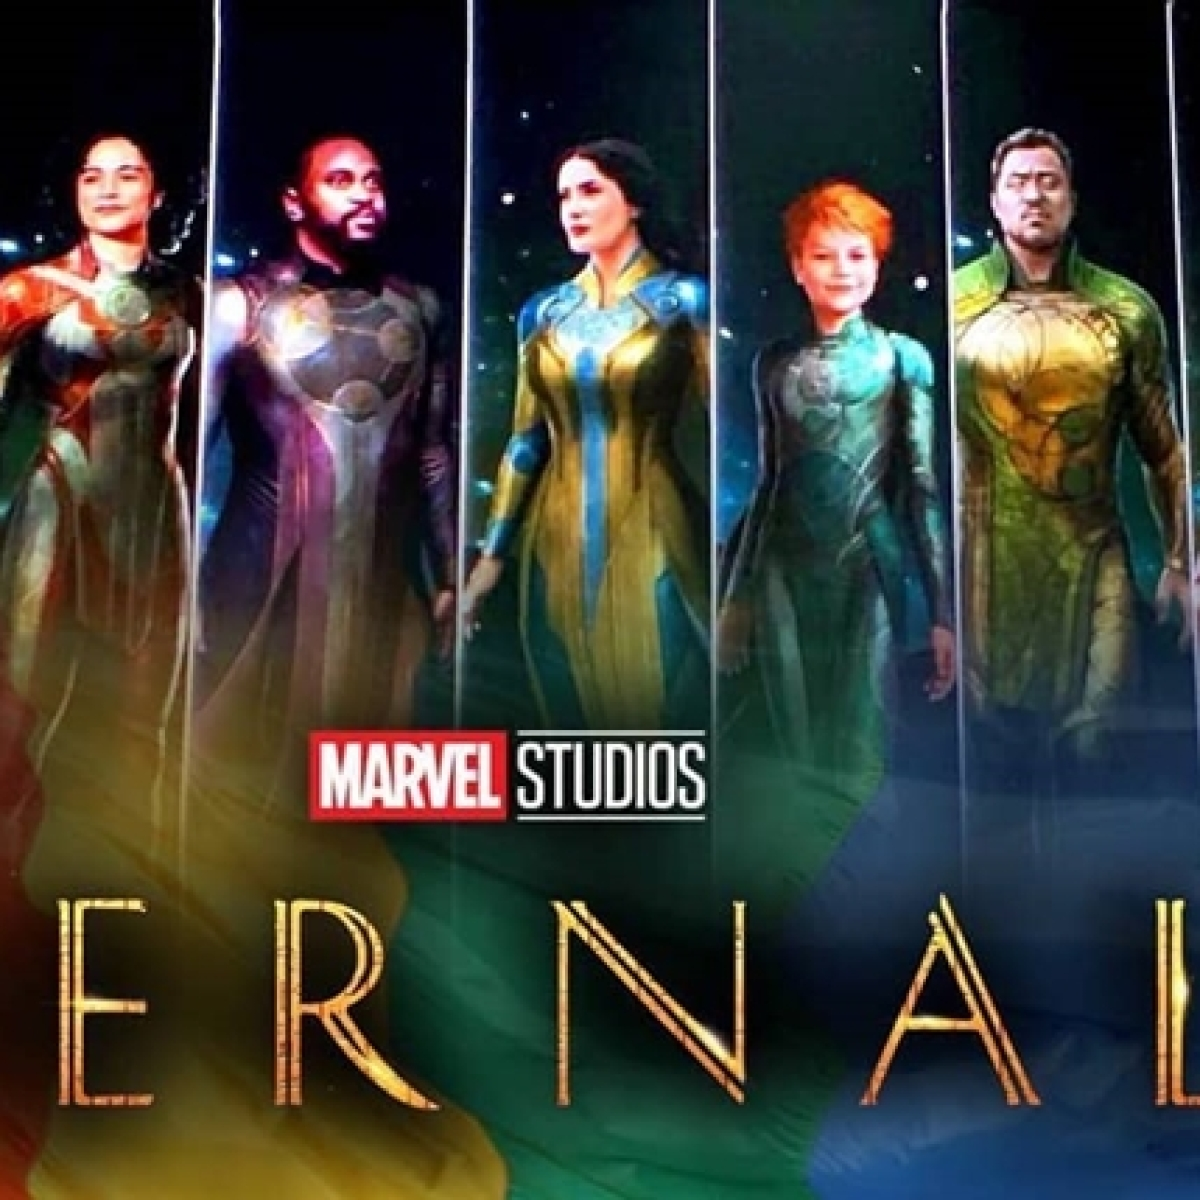 Marvel confirms 'The Eternals' will feature an openly homosexual character